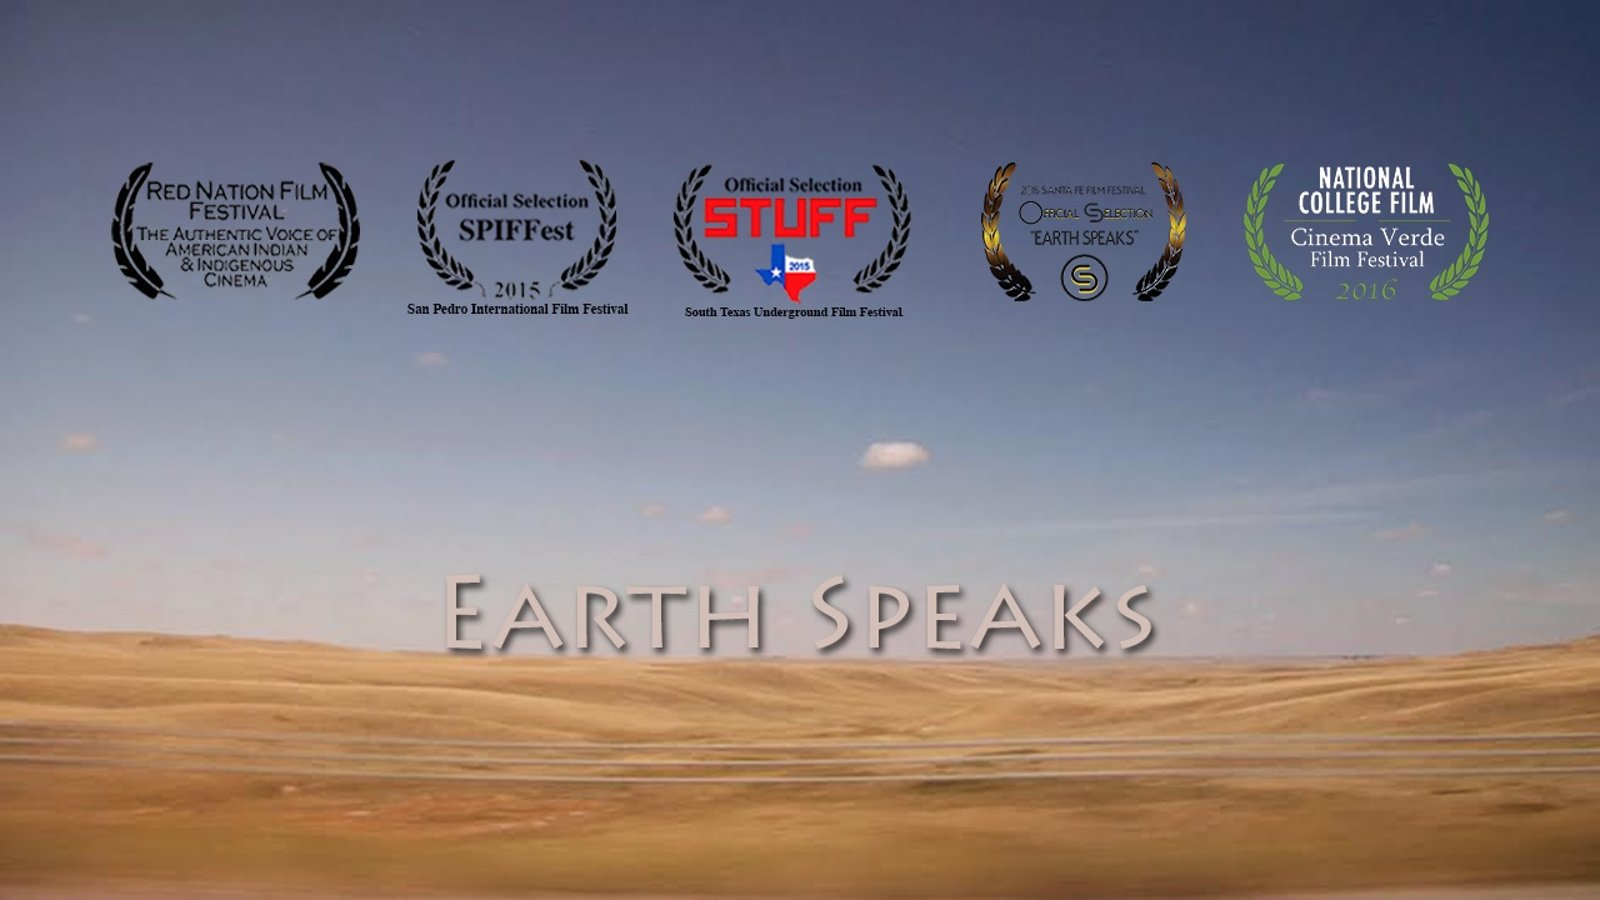 Earth Speaks: Native Americans Speak about the Earth